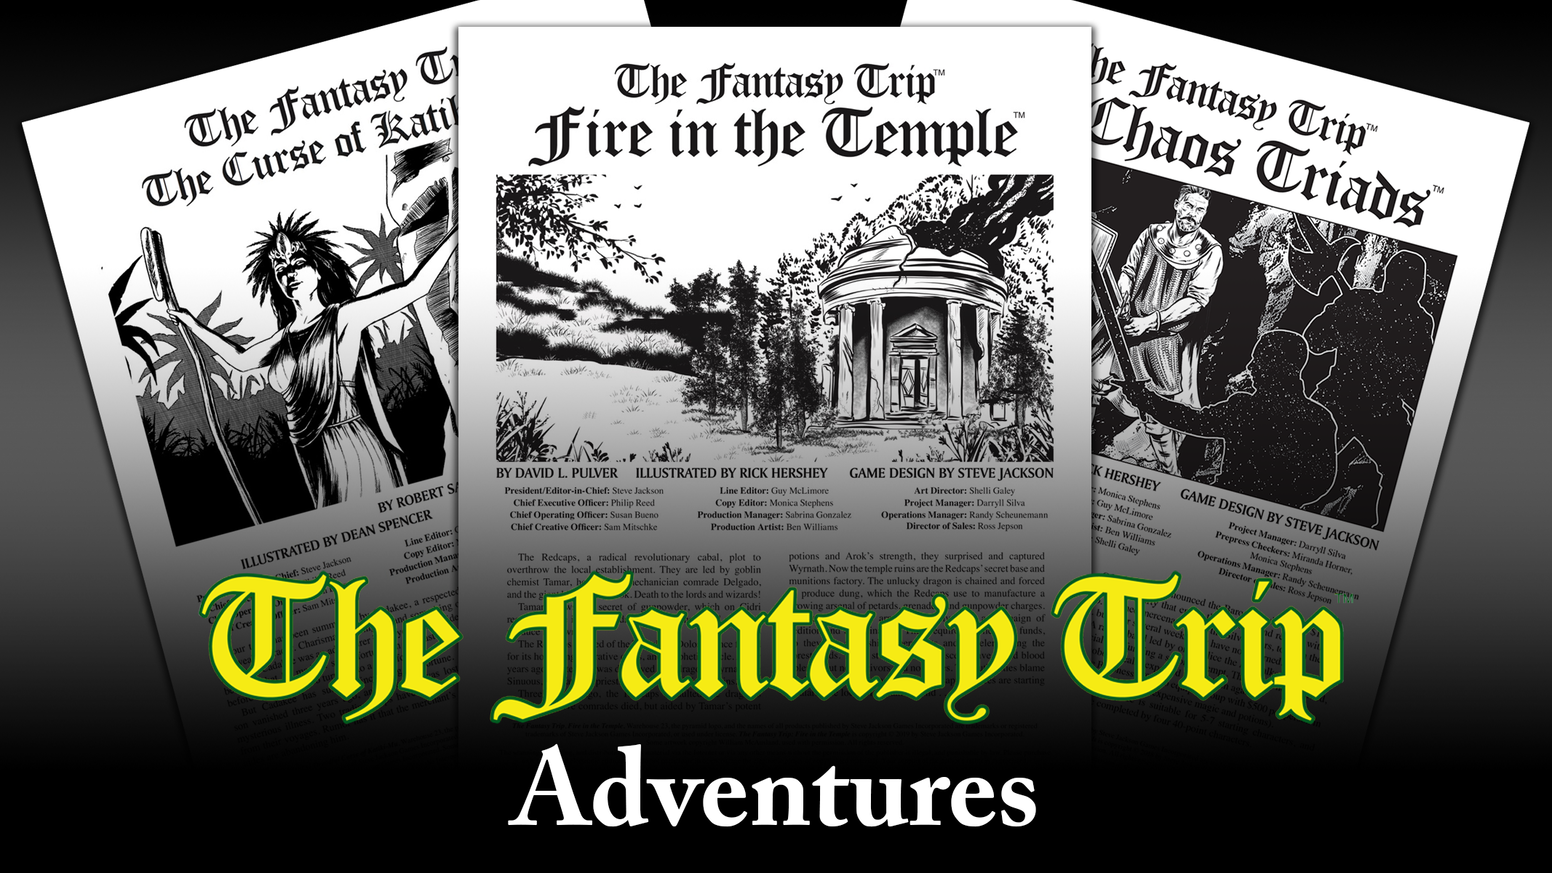 New adventures for use with The Fantasy Trip roleplaying game, offered in both print and PDF!